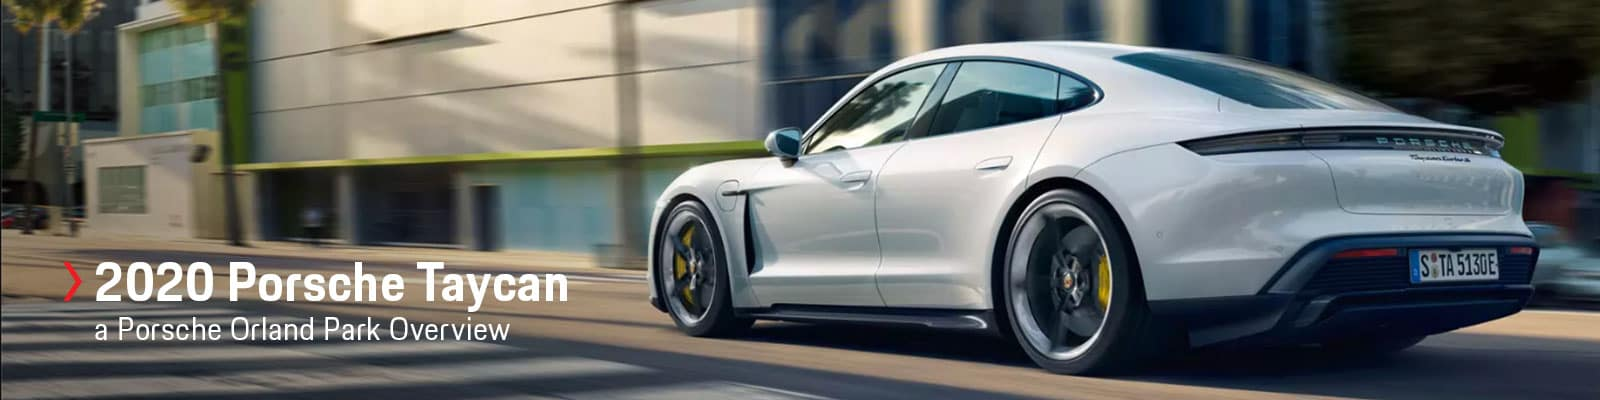 2020 Porsche Taycan Model Overview at Porsche Orland Park